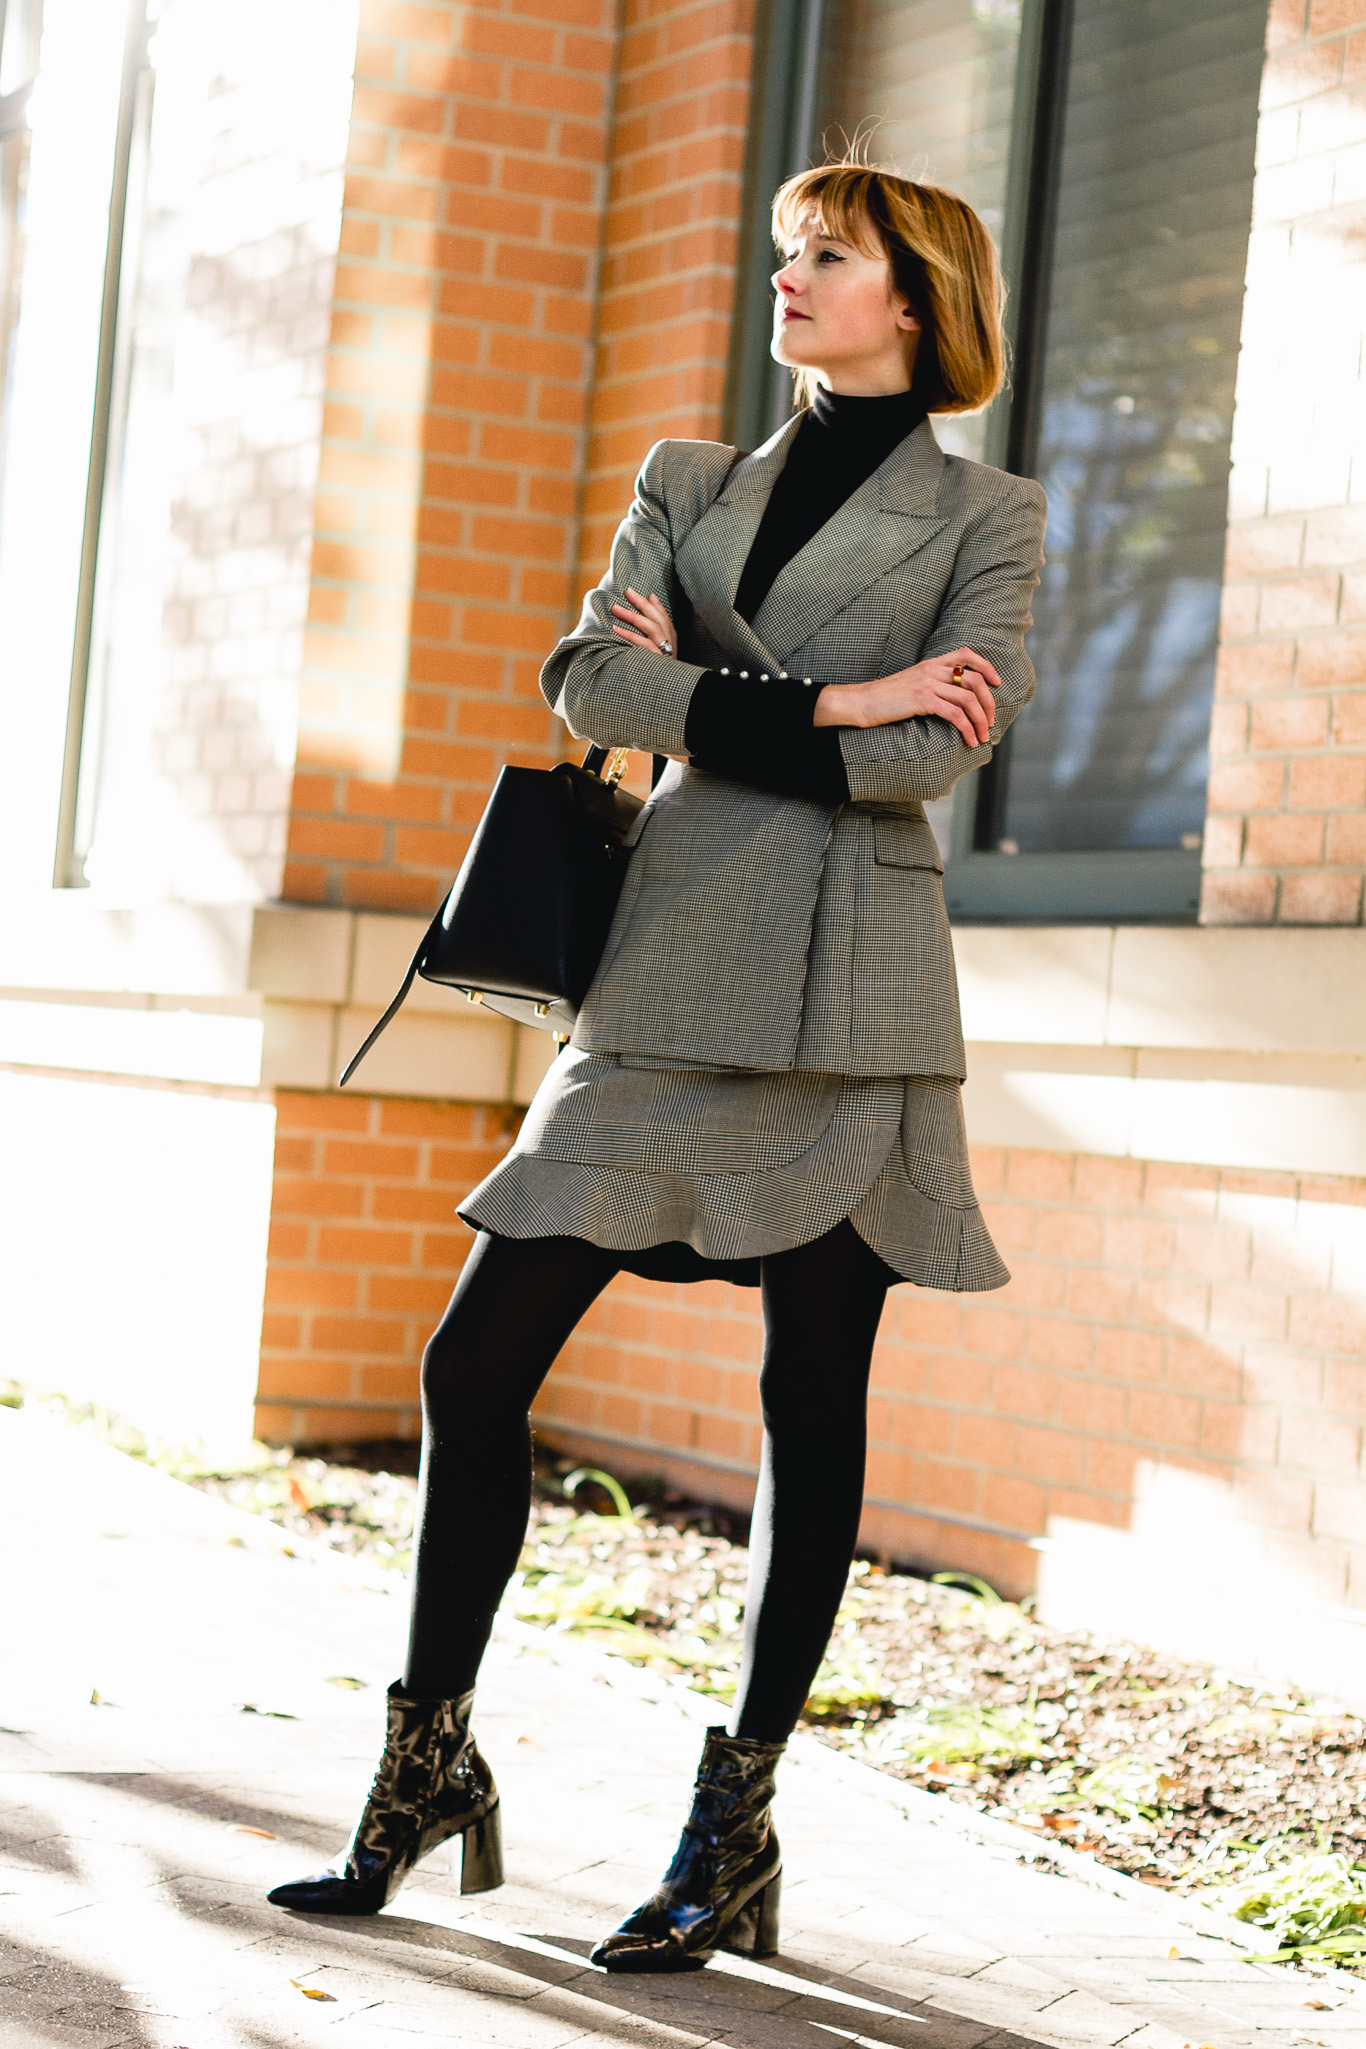 vintage blazer, Zara plaid skirt, and Mango patent boots